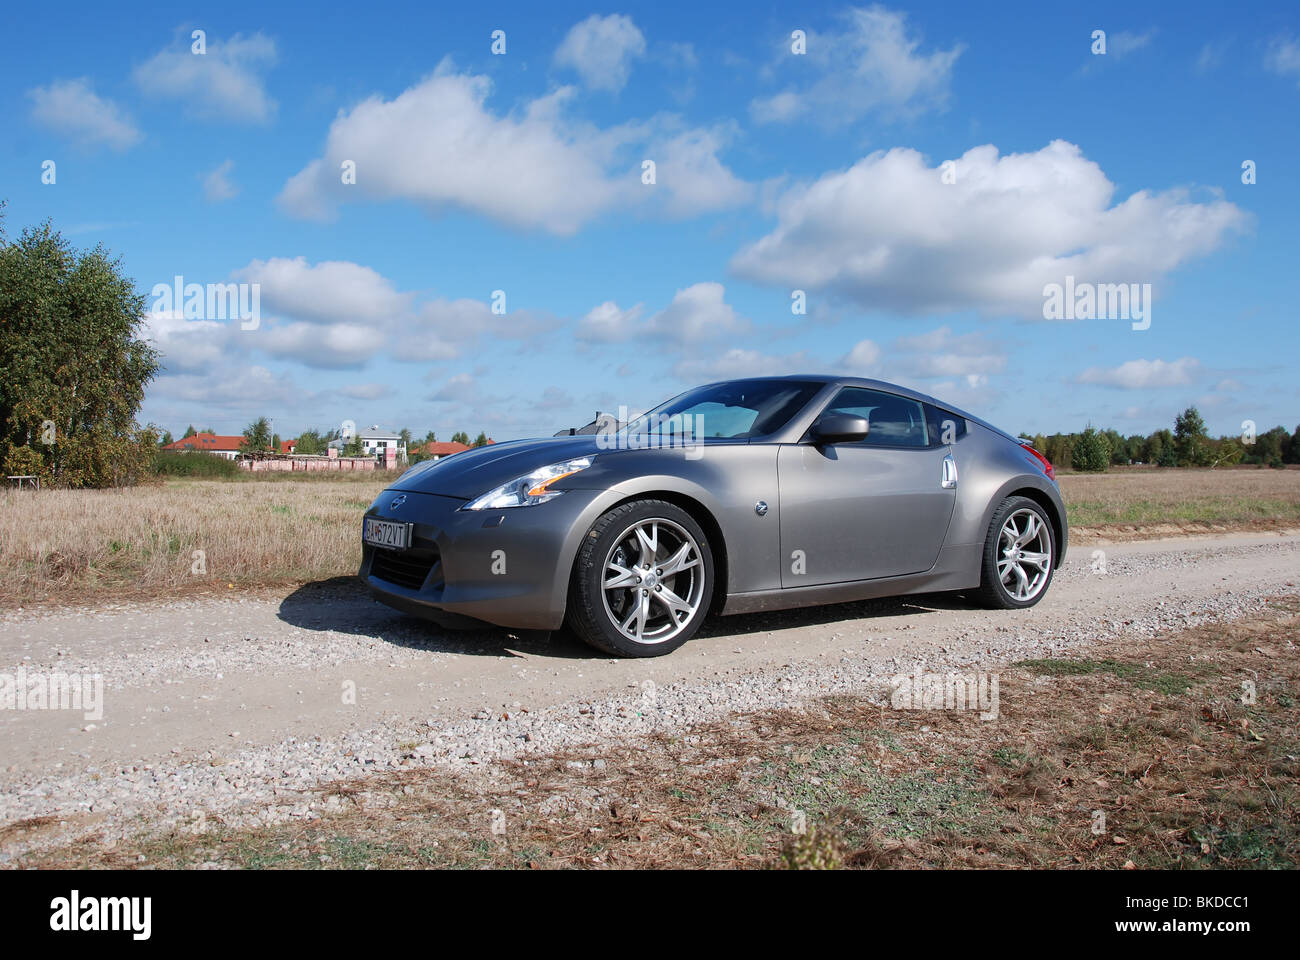 Nissan 370Z   2009   Gray Metallic   Two Doors (2D)   Japan Popular